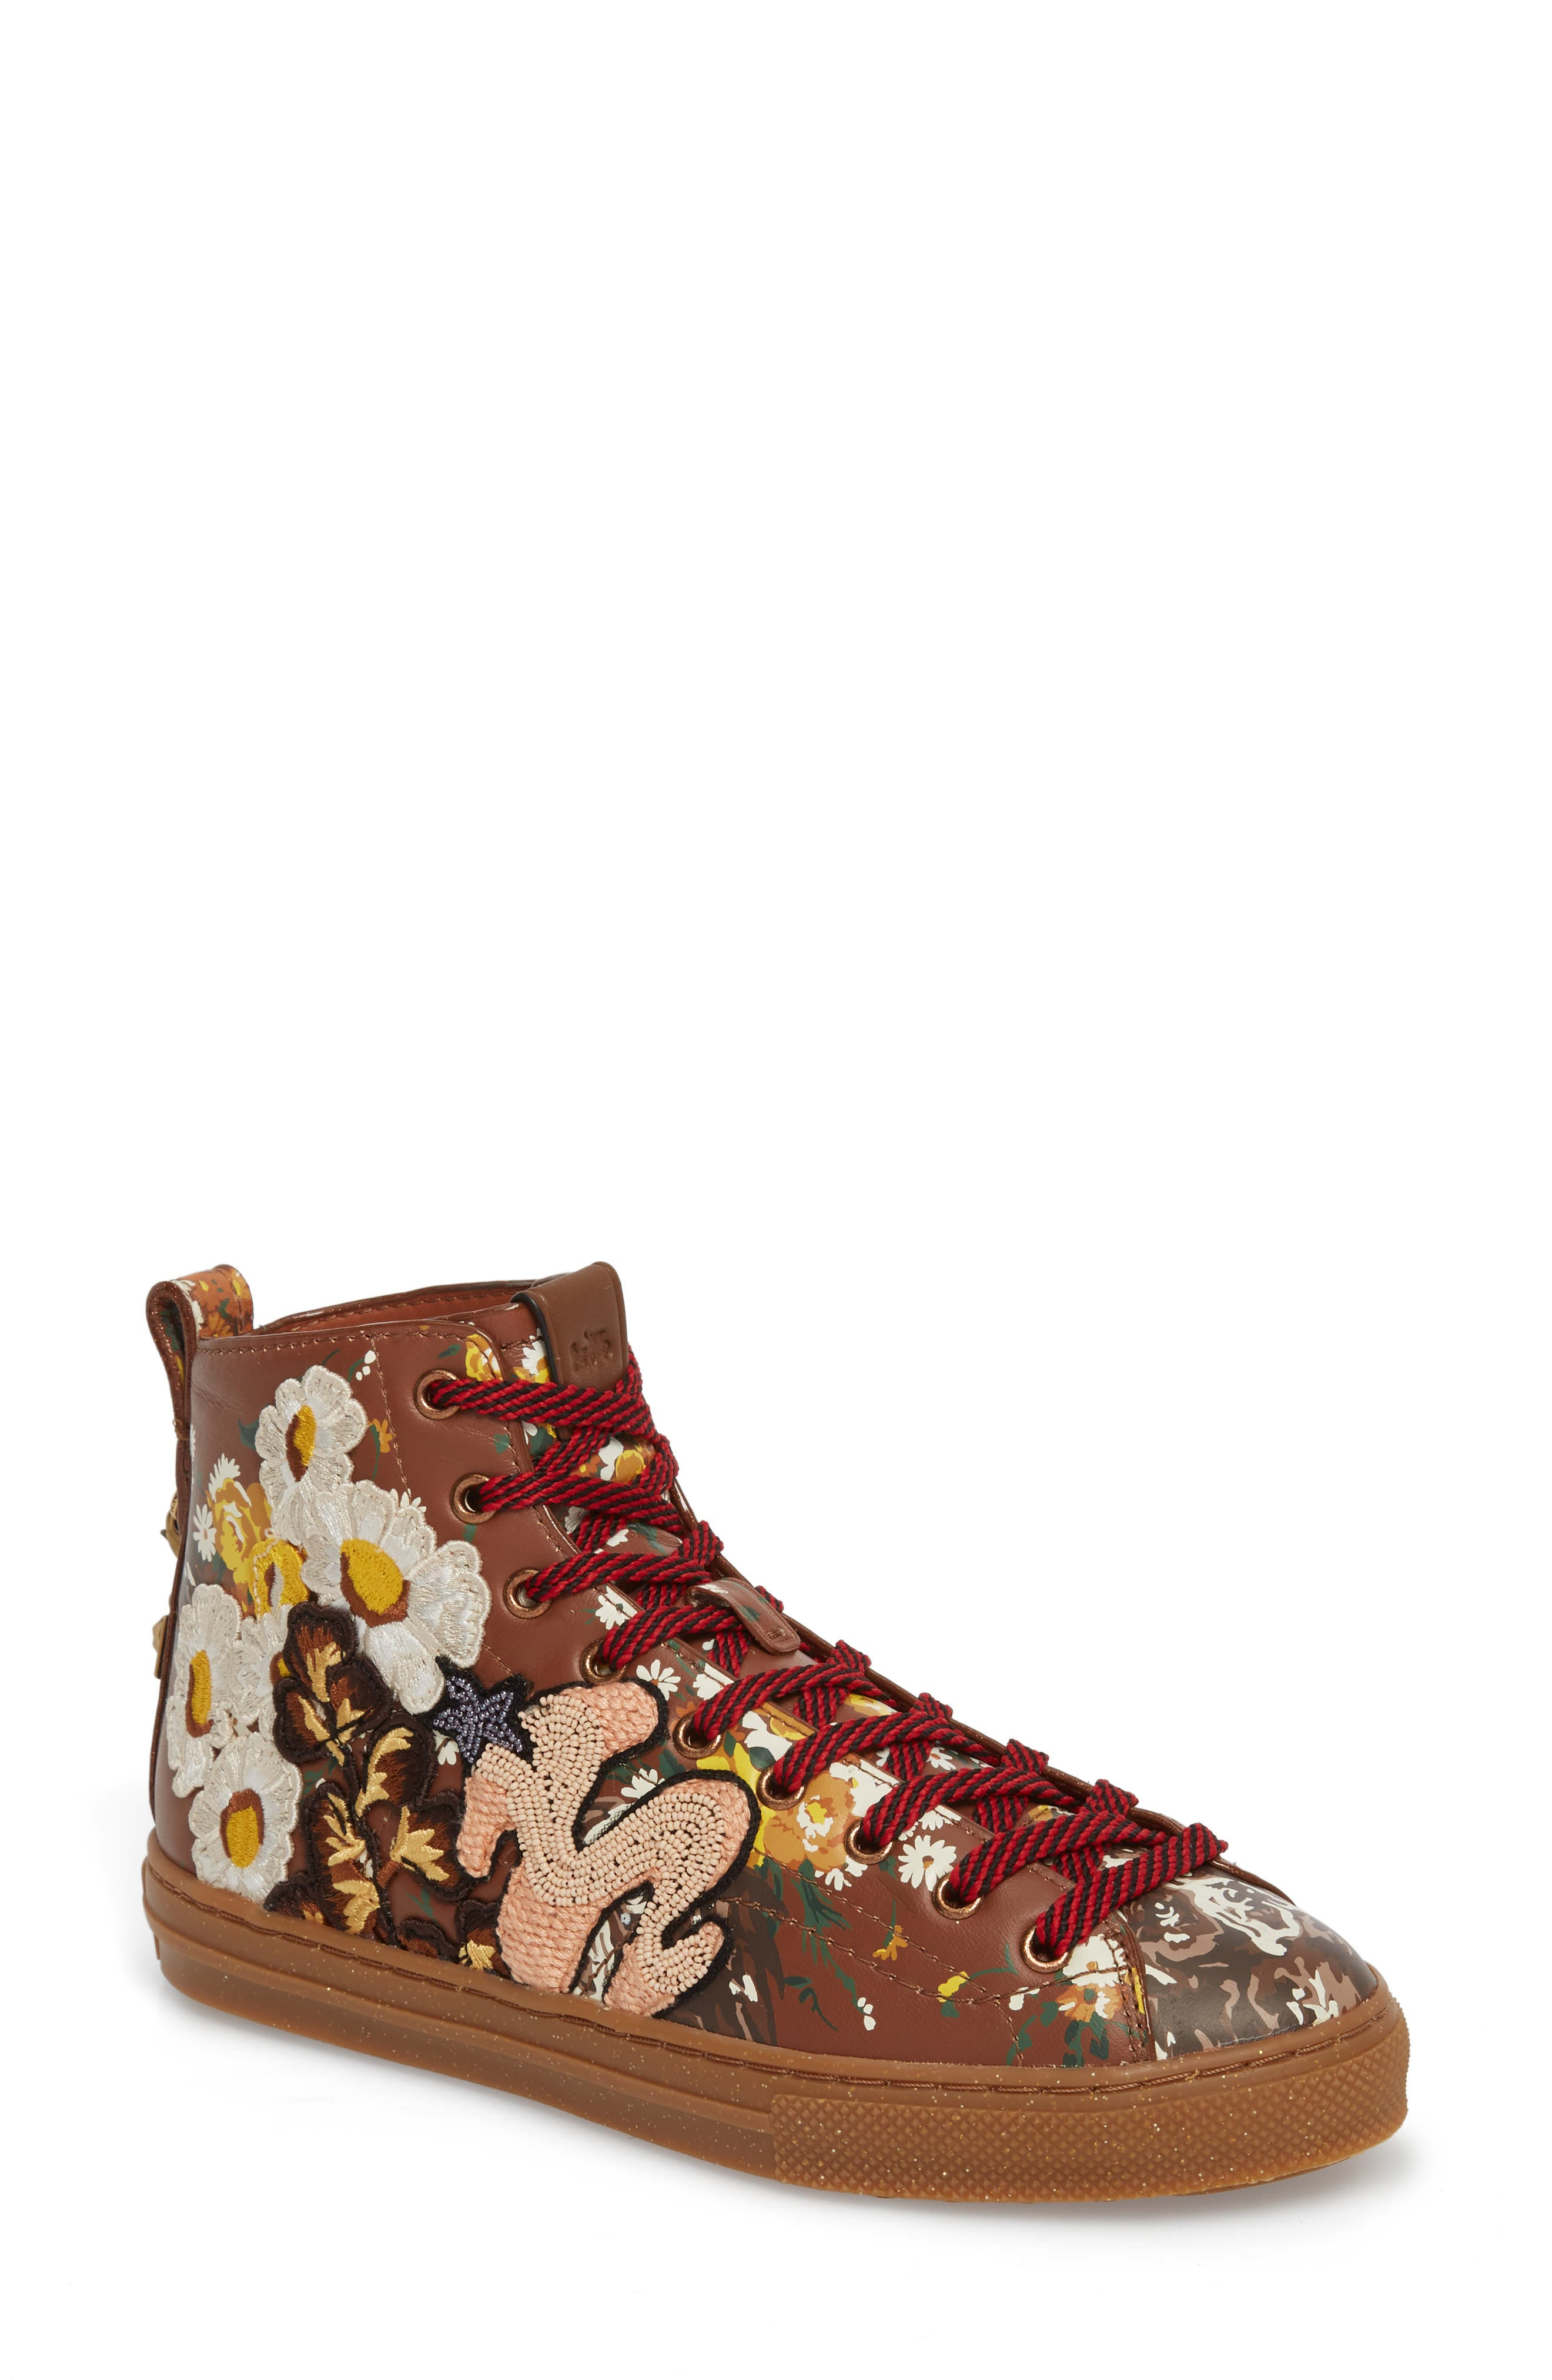 Flower Patch High Top Sneaker,                         Main,                         color, Teak Leather